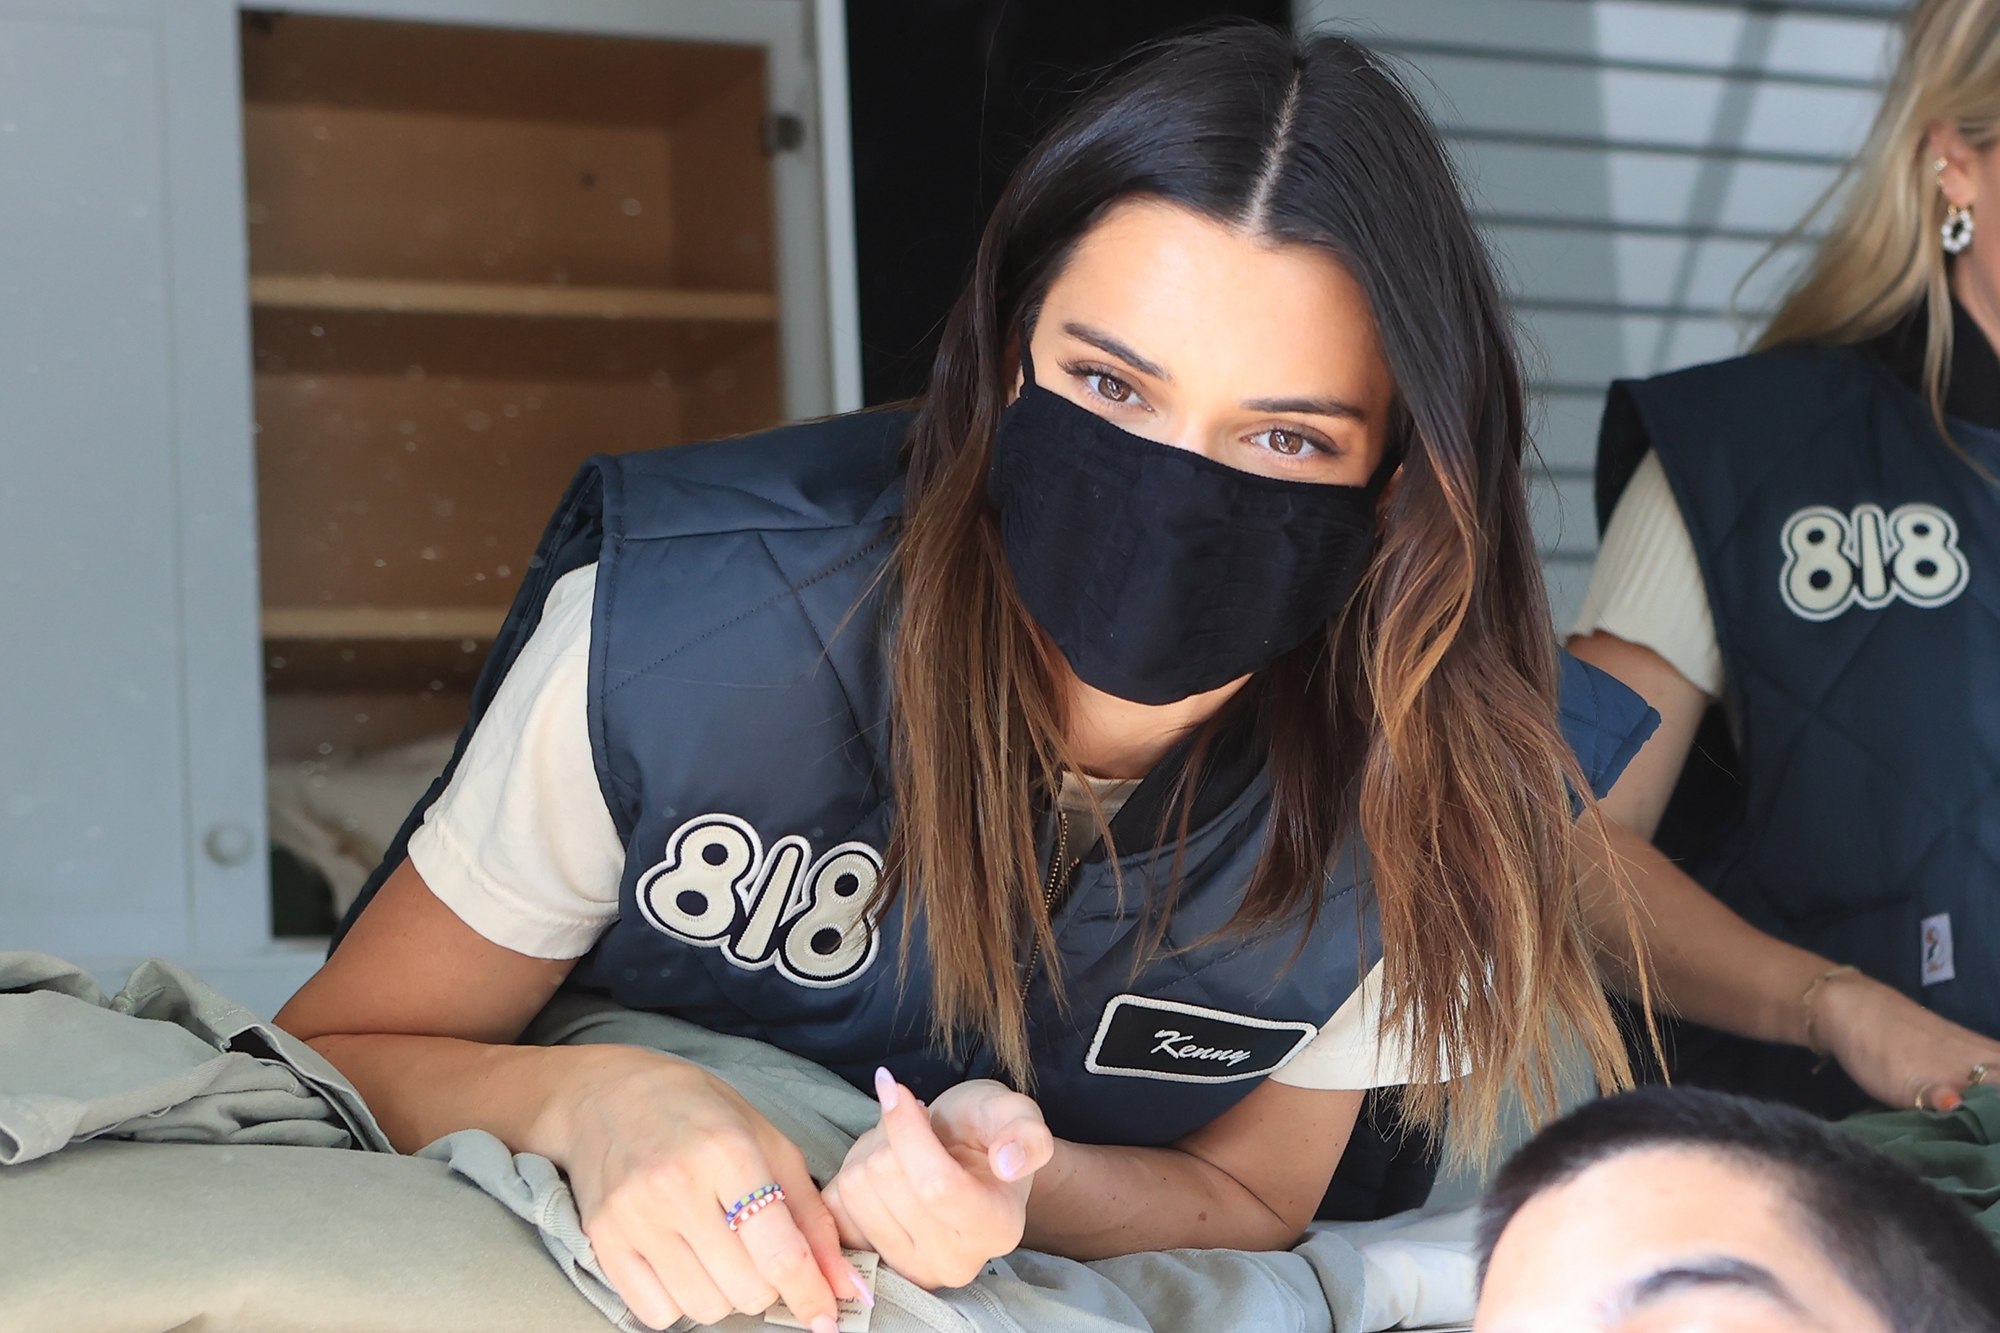 Kendall Jenner gives away 818 Tequila merchandise from her custom truck